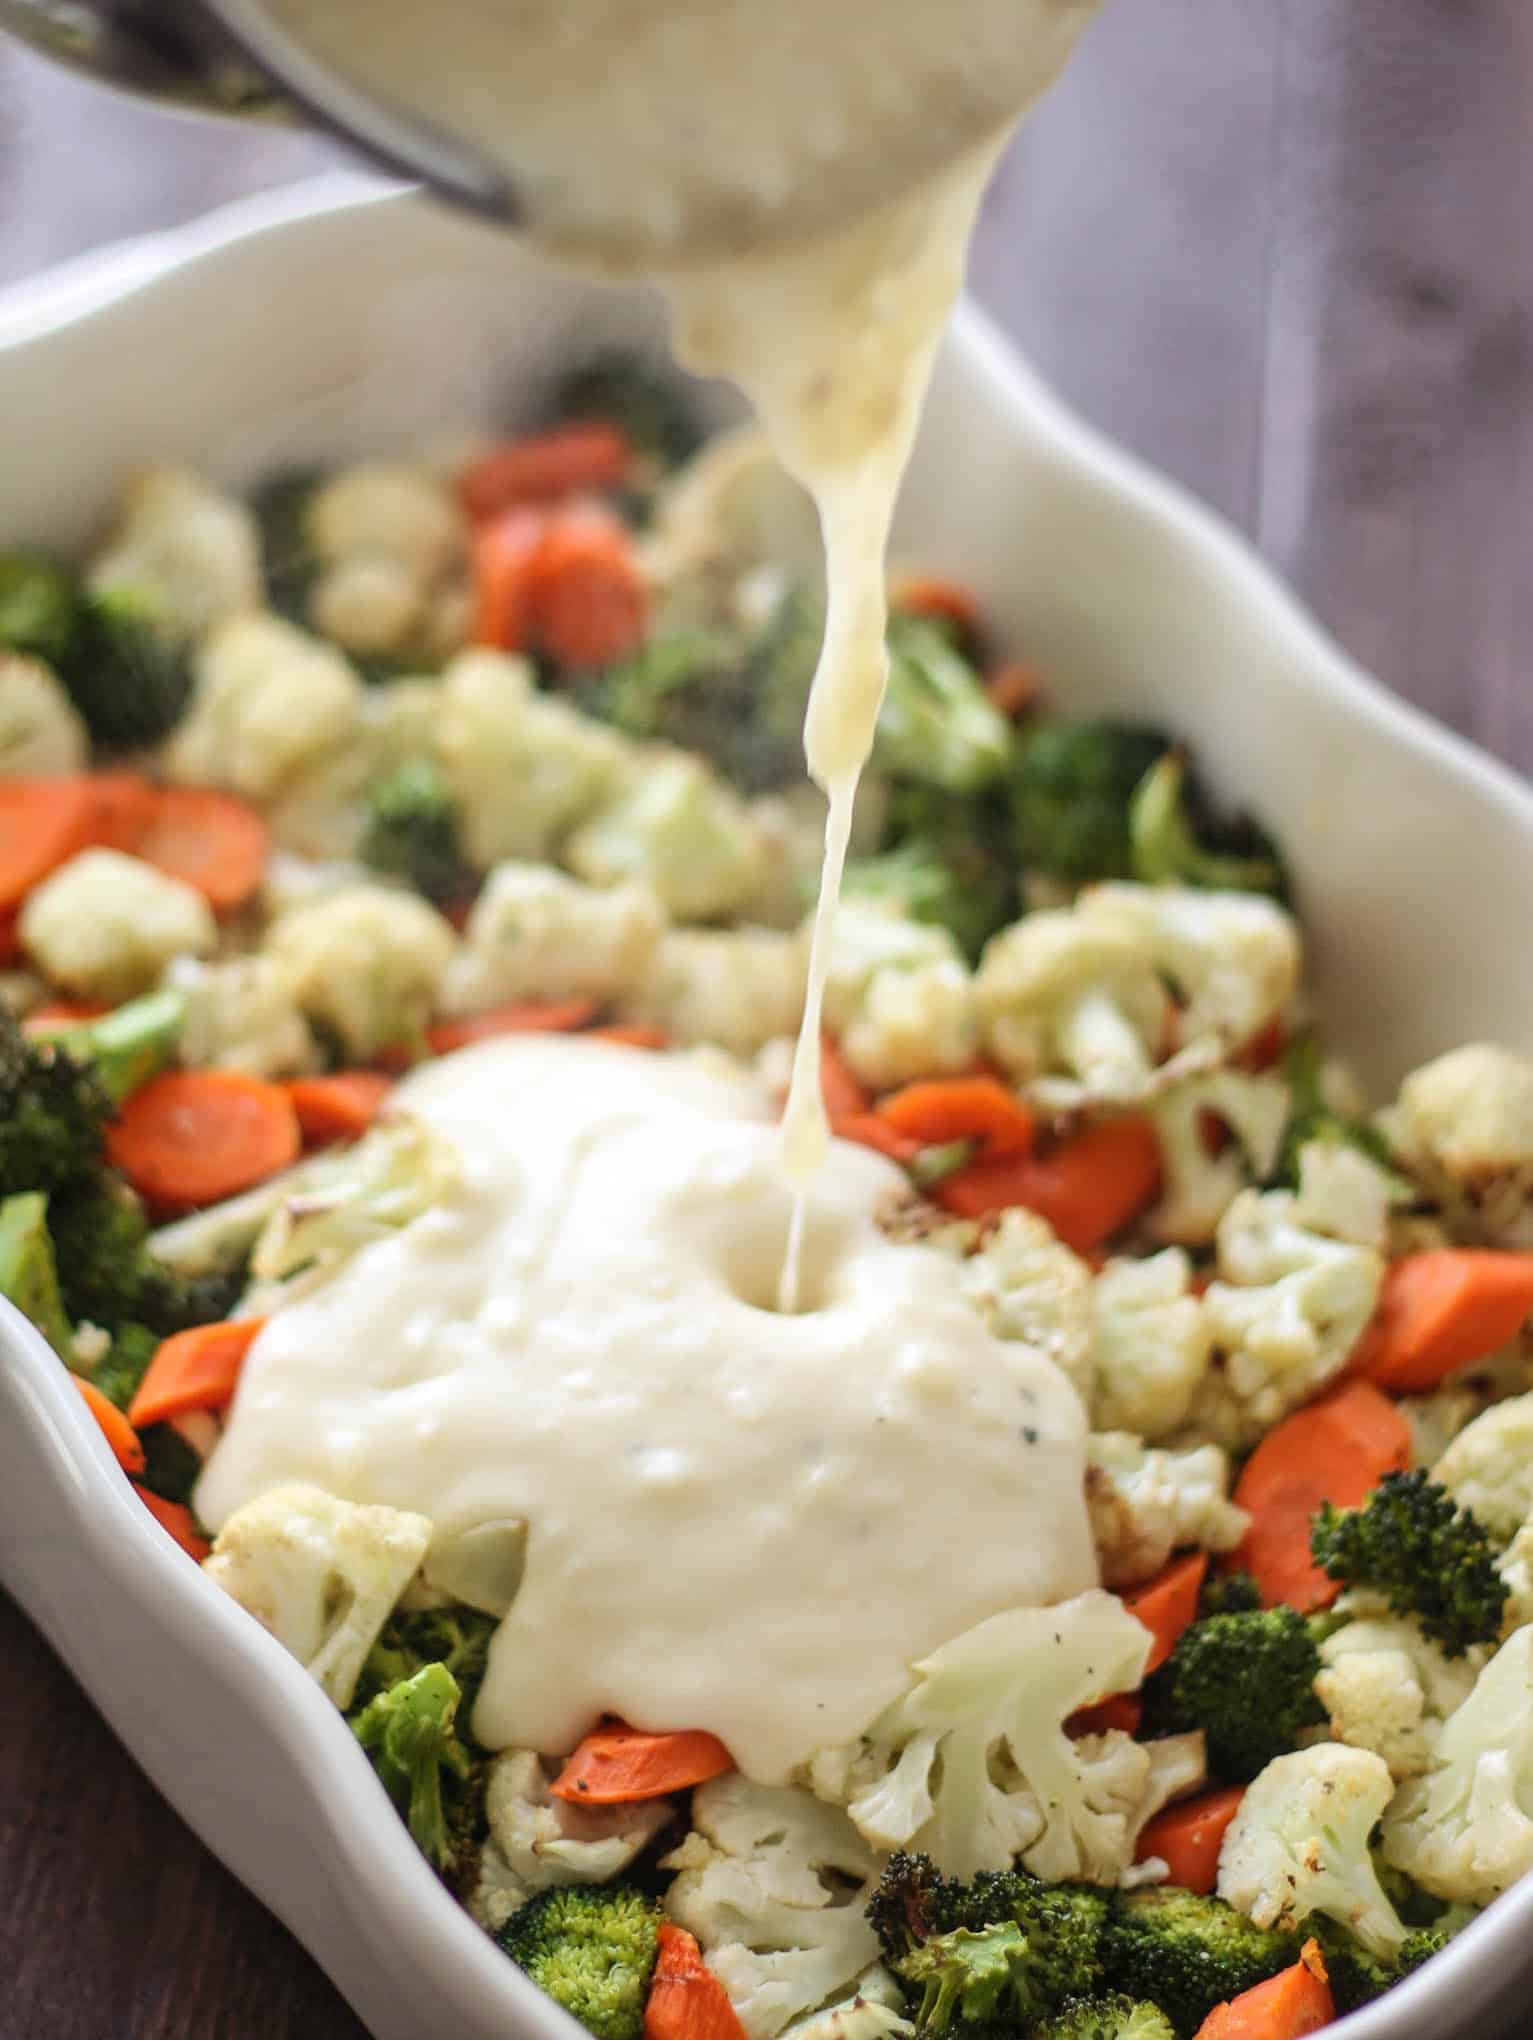 Pouring the cheese sauce over the roasted vegetables in the dish